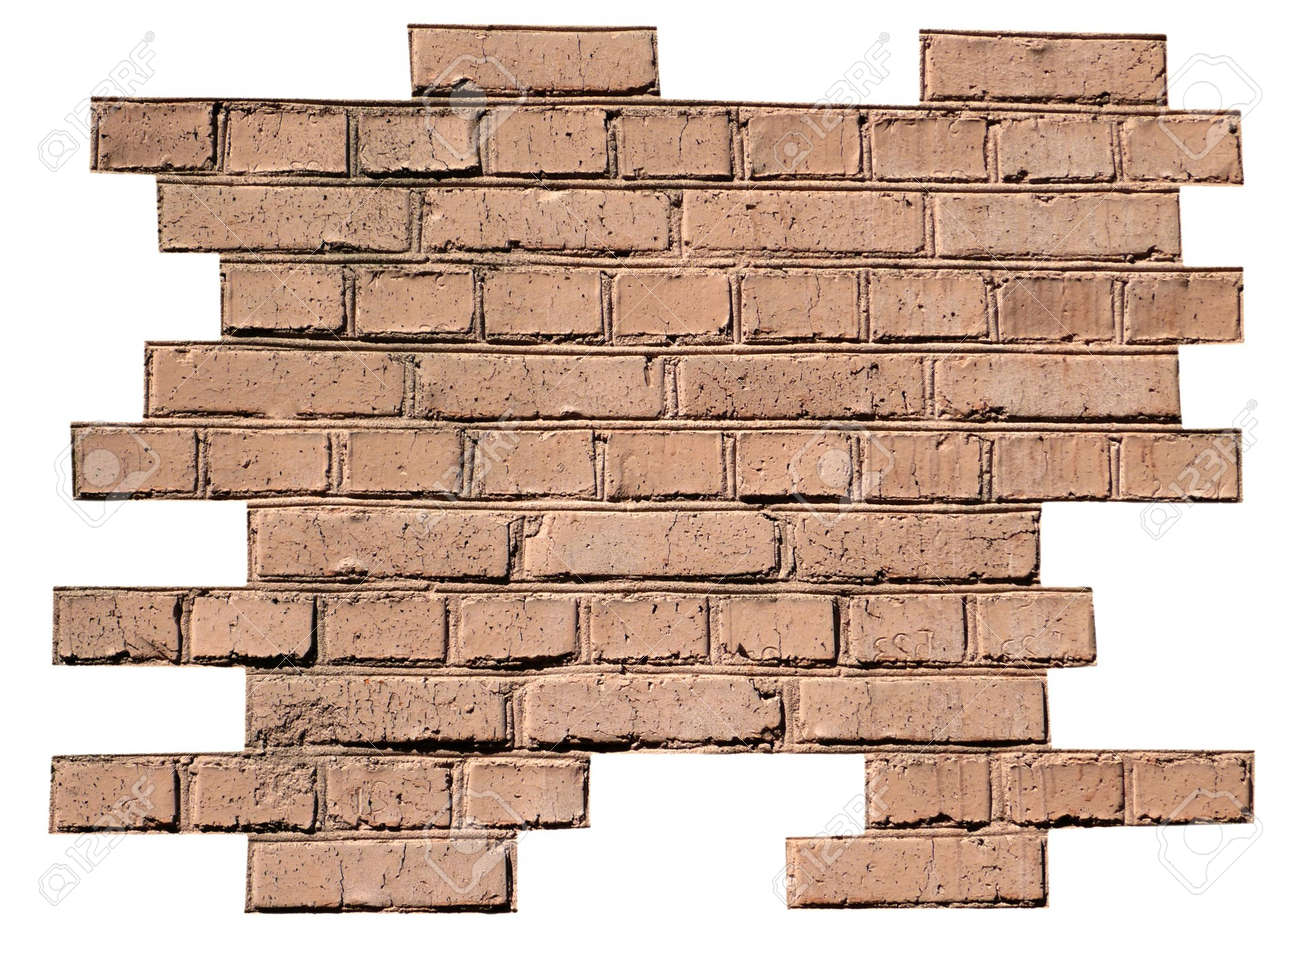 red brick wall background at day Stock Photo - 6992927